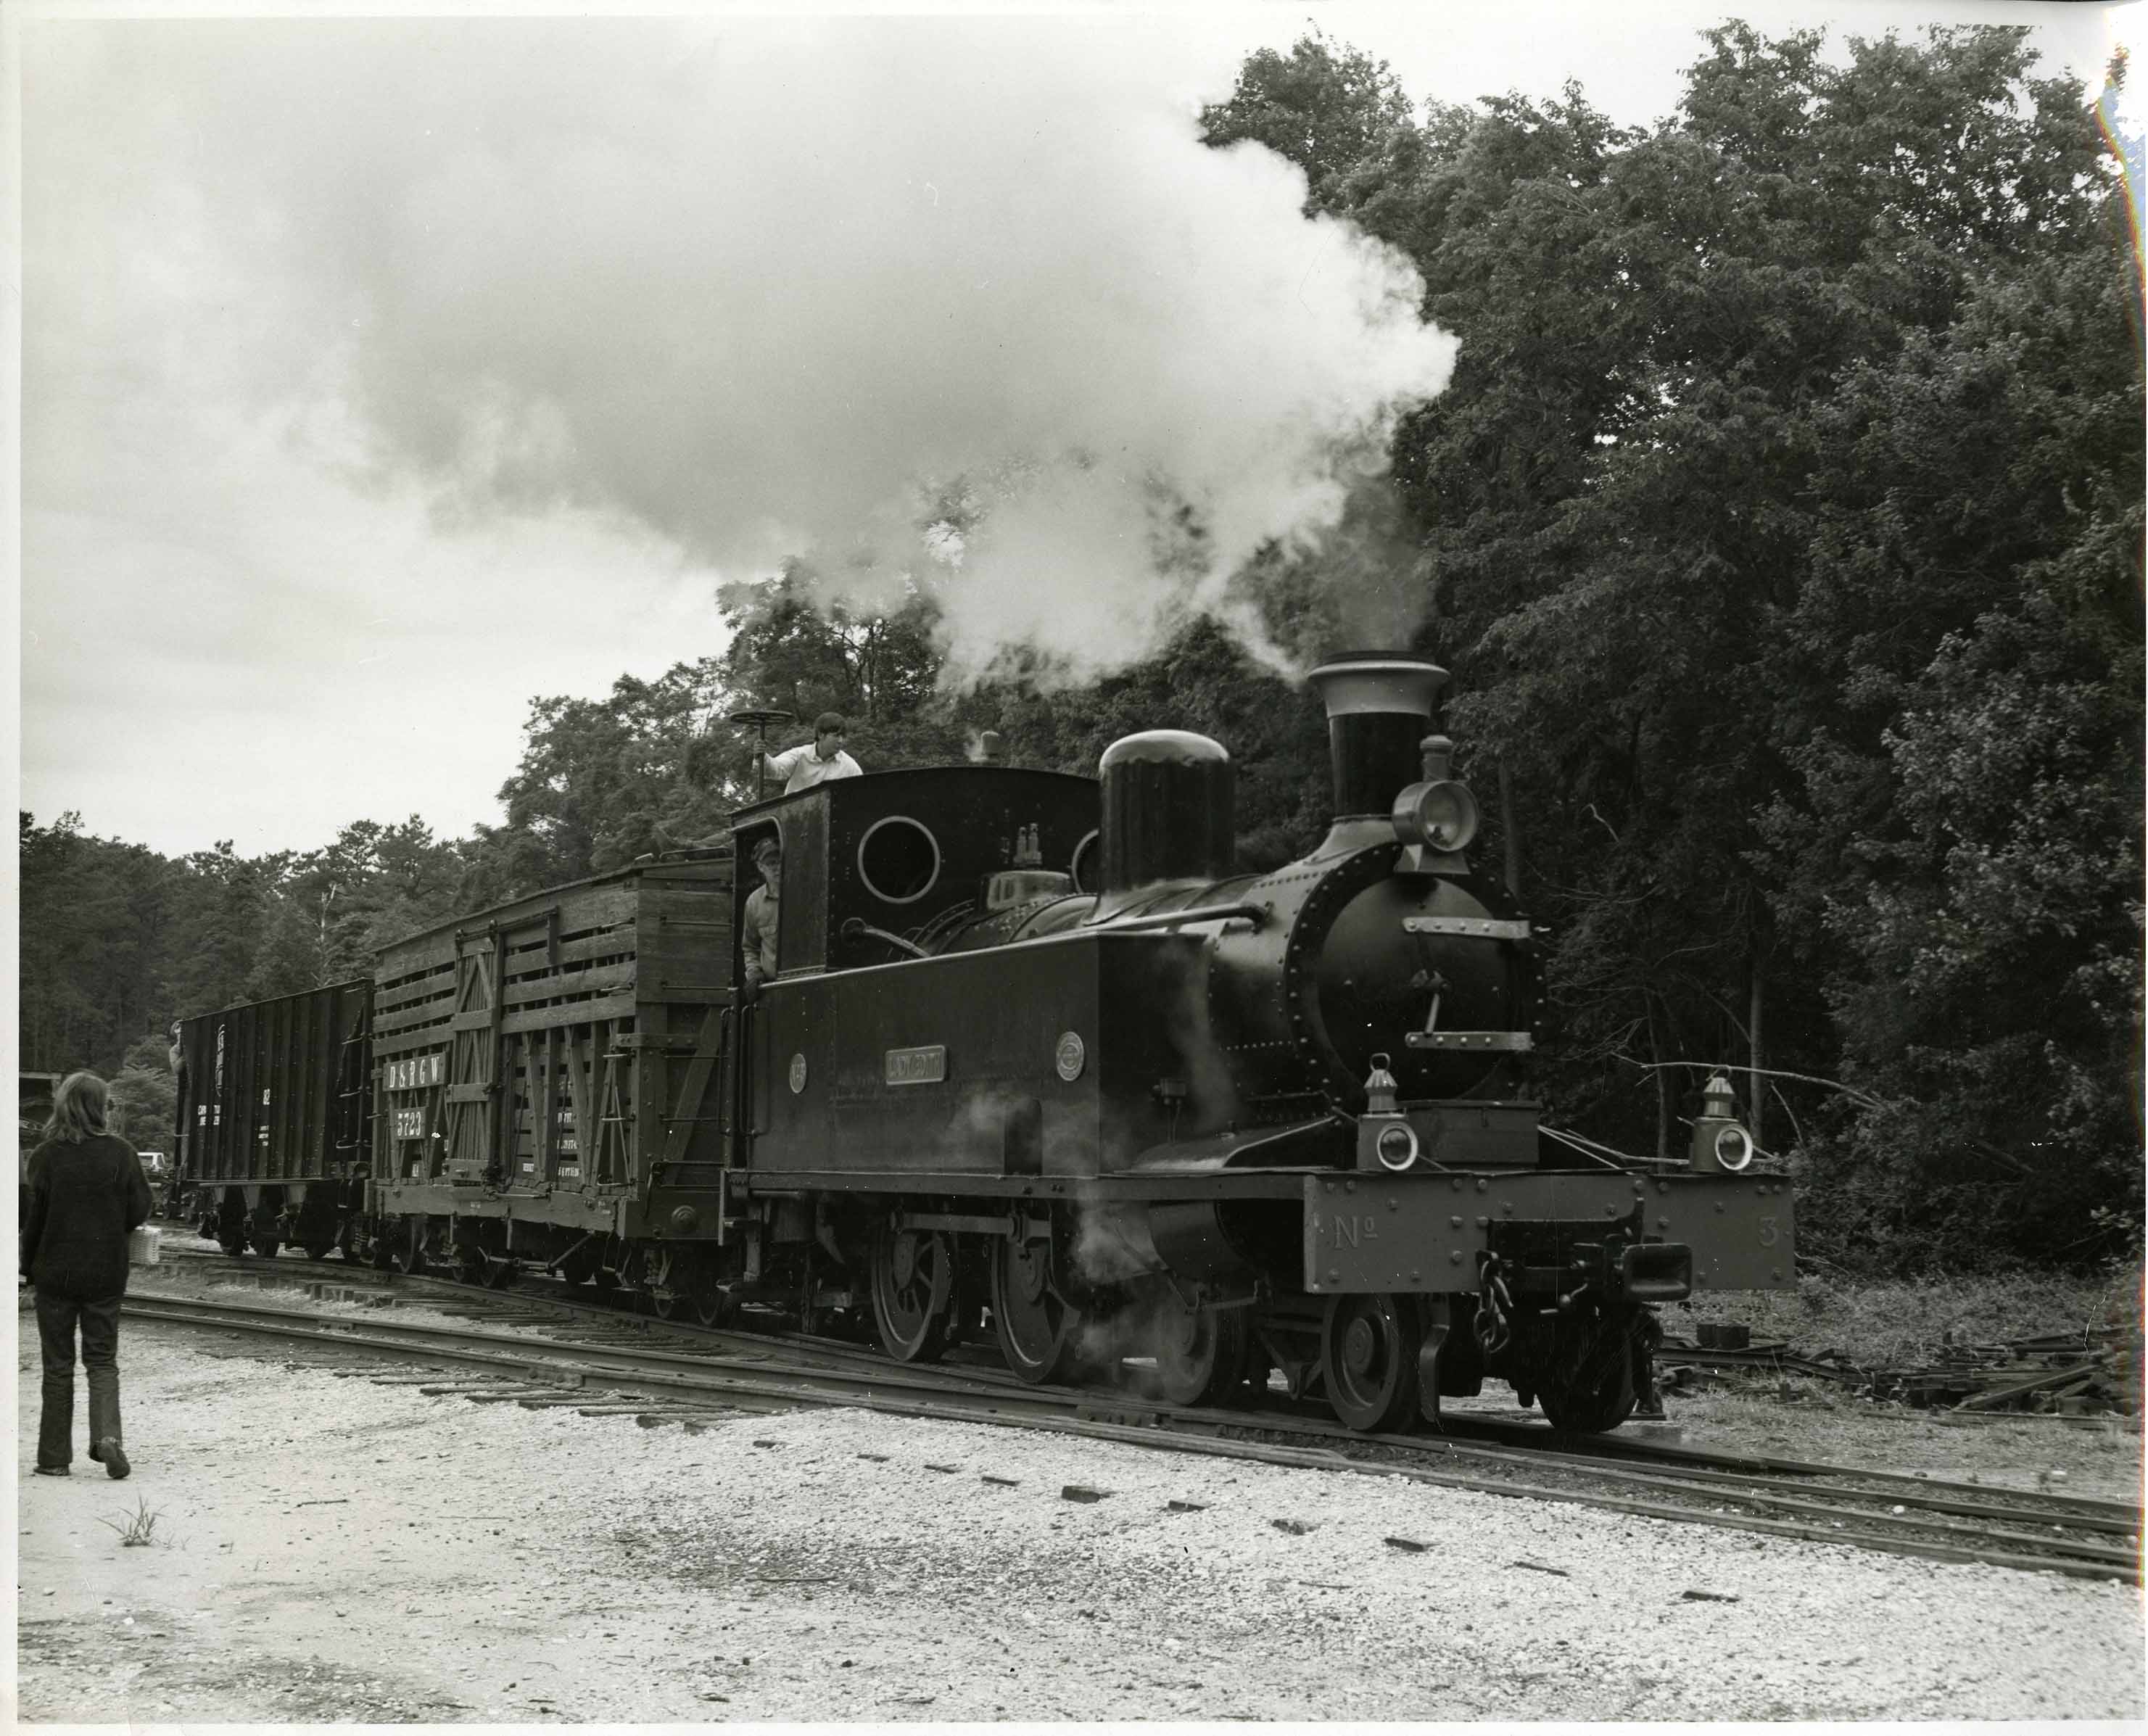 The Lady Edith steam locomotive, 1969